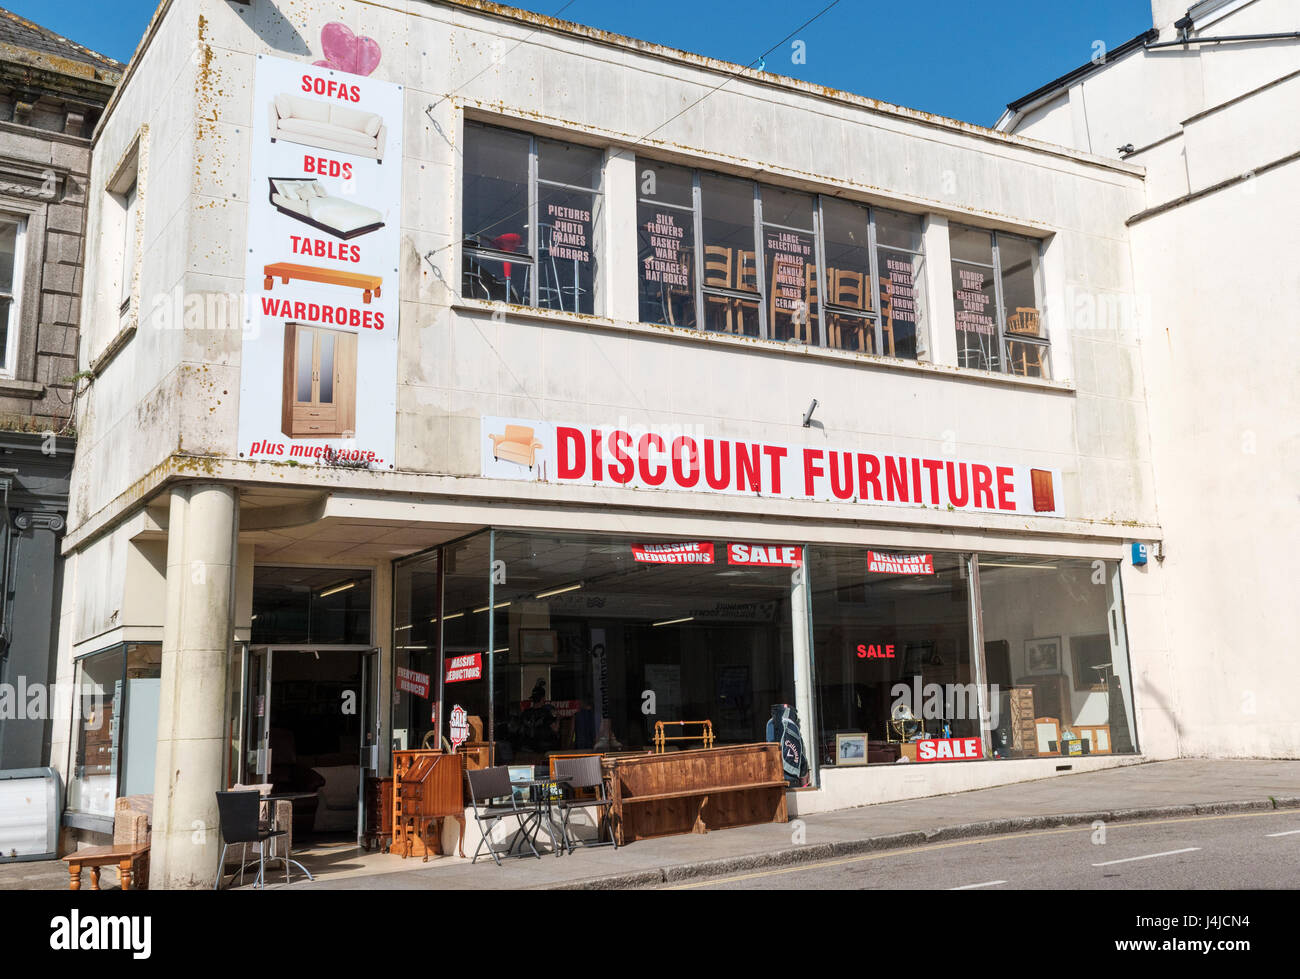 Furniture High Resolution Stock Photography And Images Alamy